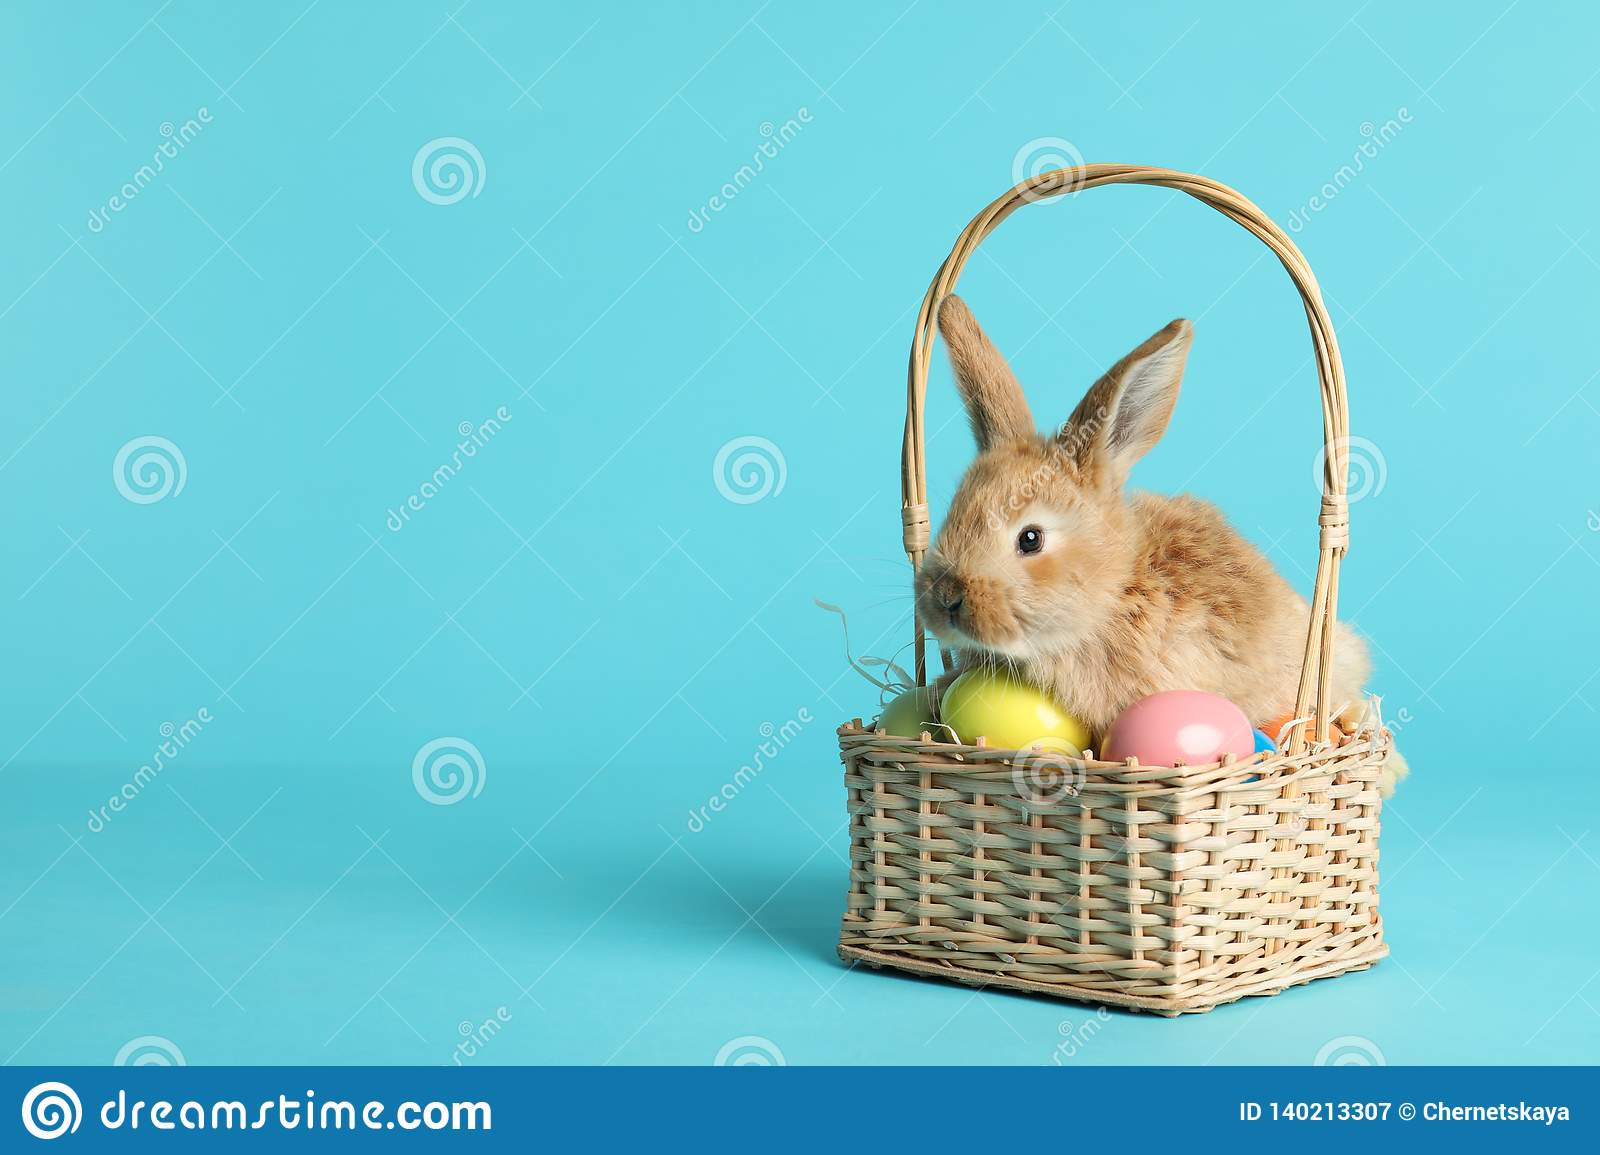 Adorable furry Easter bunny in wicker basket with dyed eggs on color background